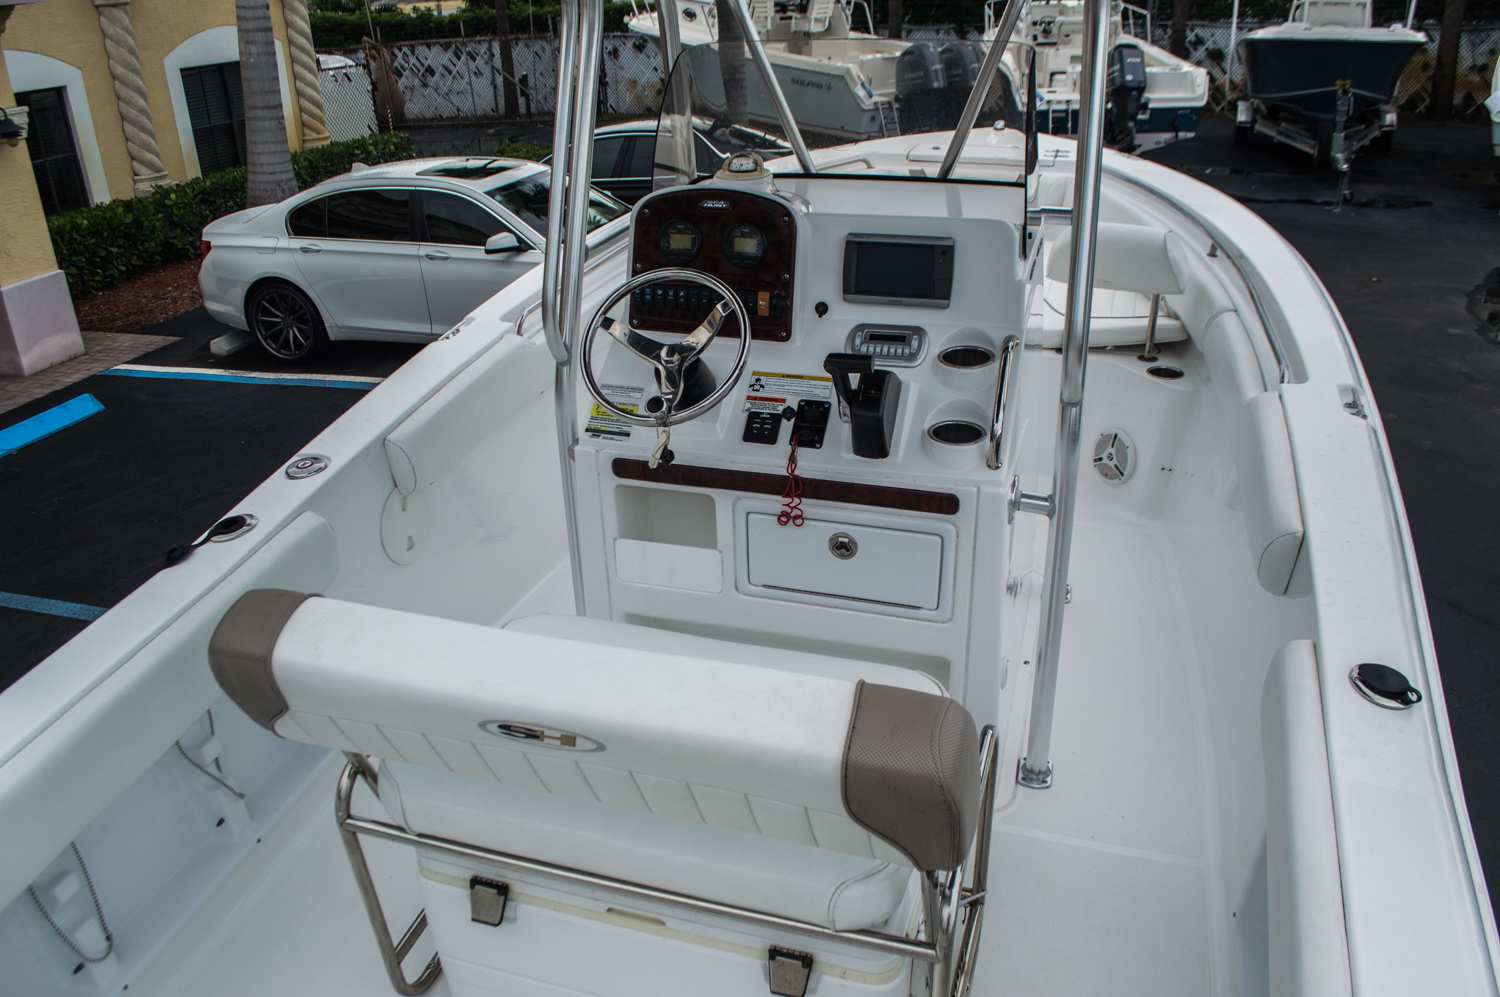 Thumbnail 8 for Used 2012 Sea Hunt 211 Ultra boat for sale in West Palm Beach, FL